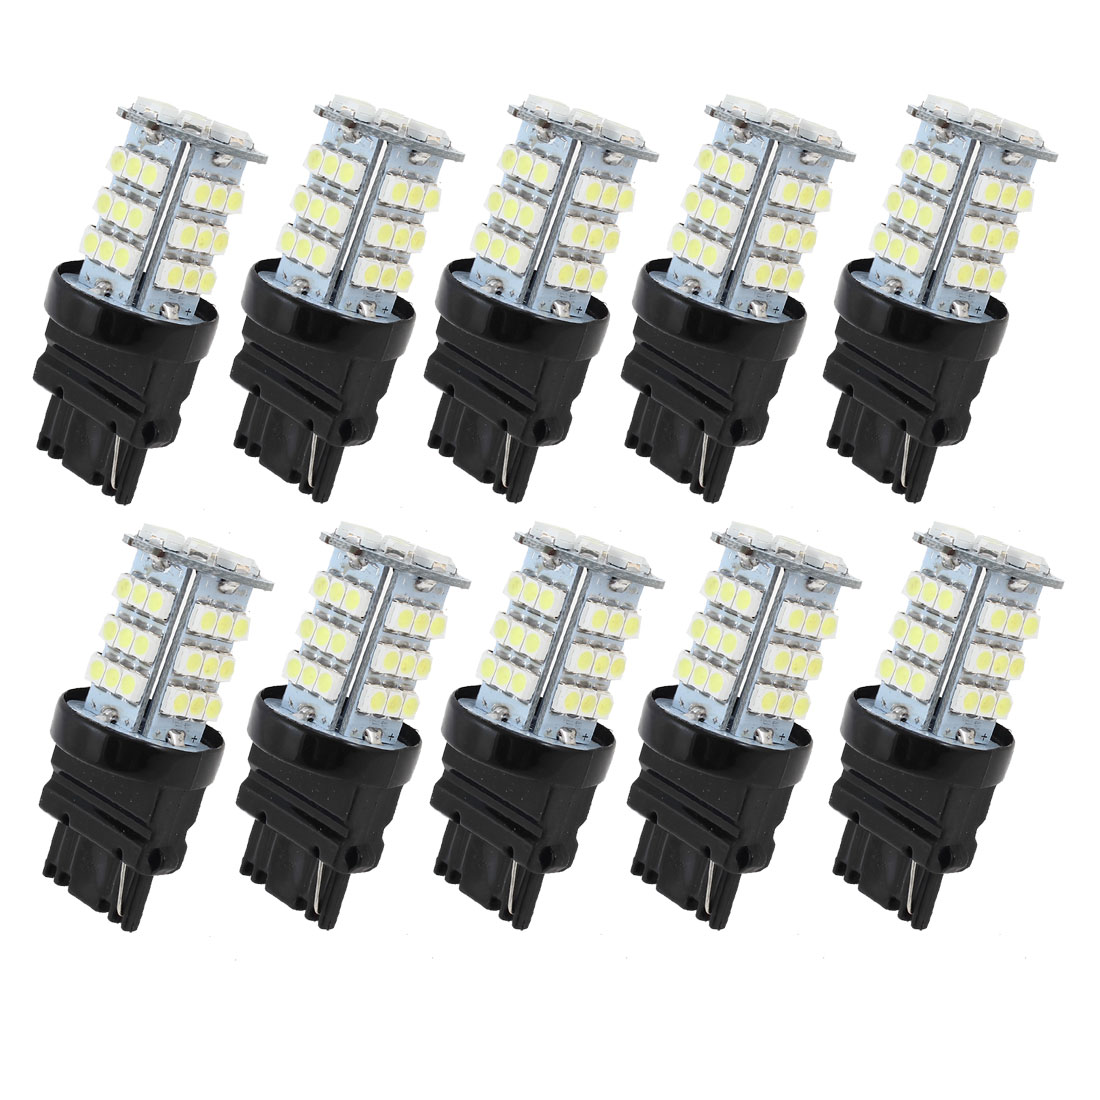 10 Pcs 3156 3528 SMD 45 LED Car Turn Signal Light Lamp Bulbs White 4114 4156